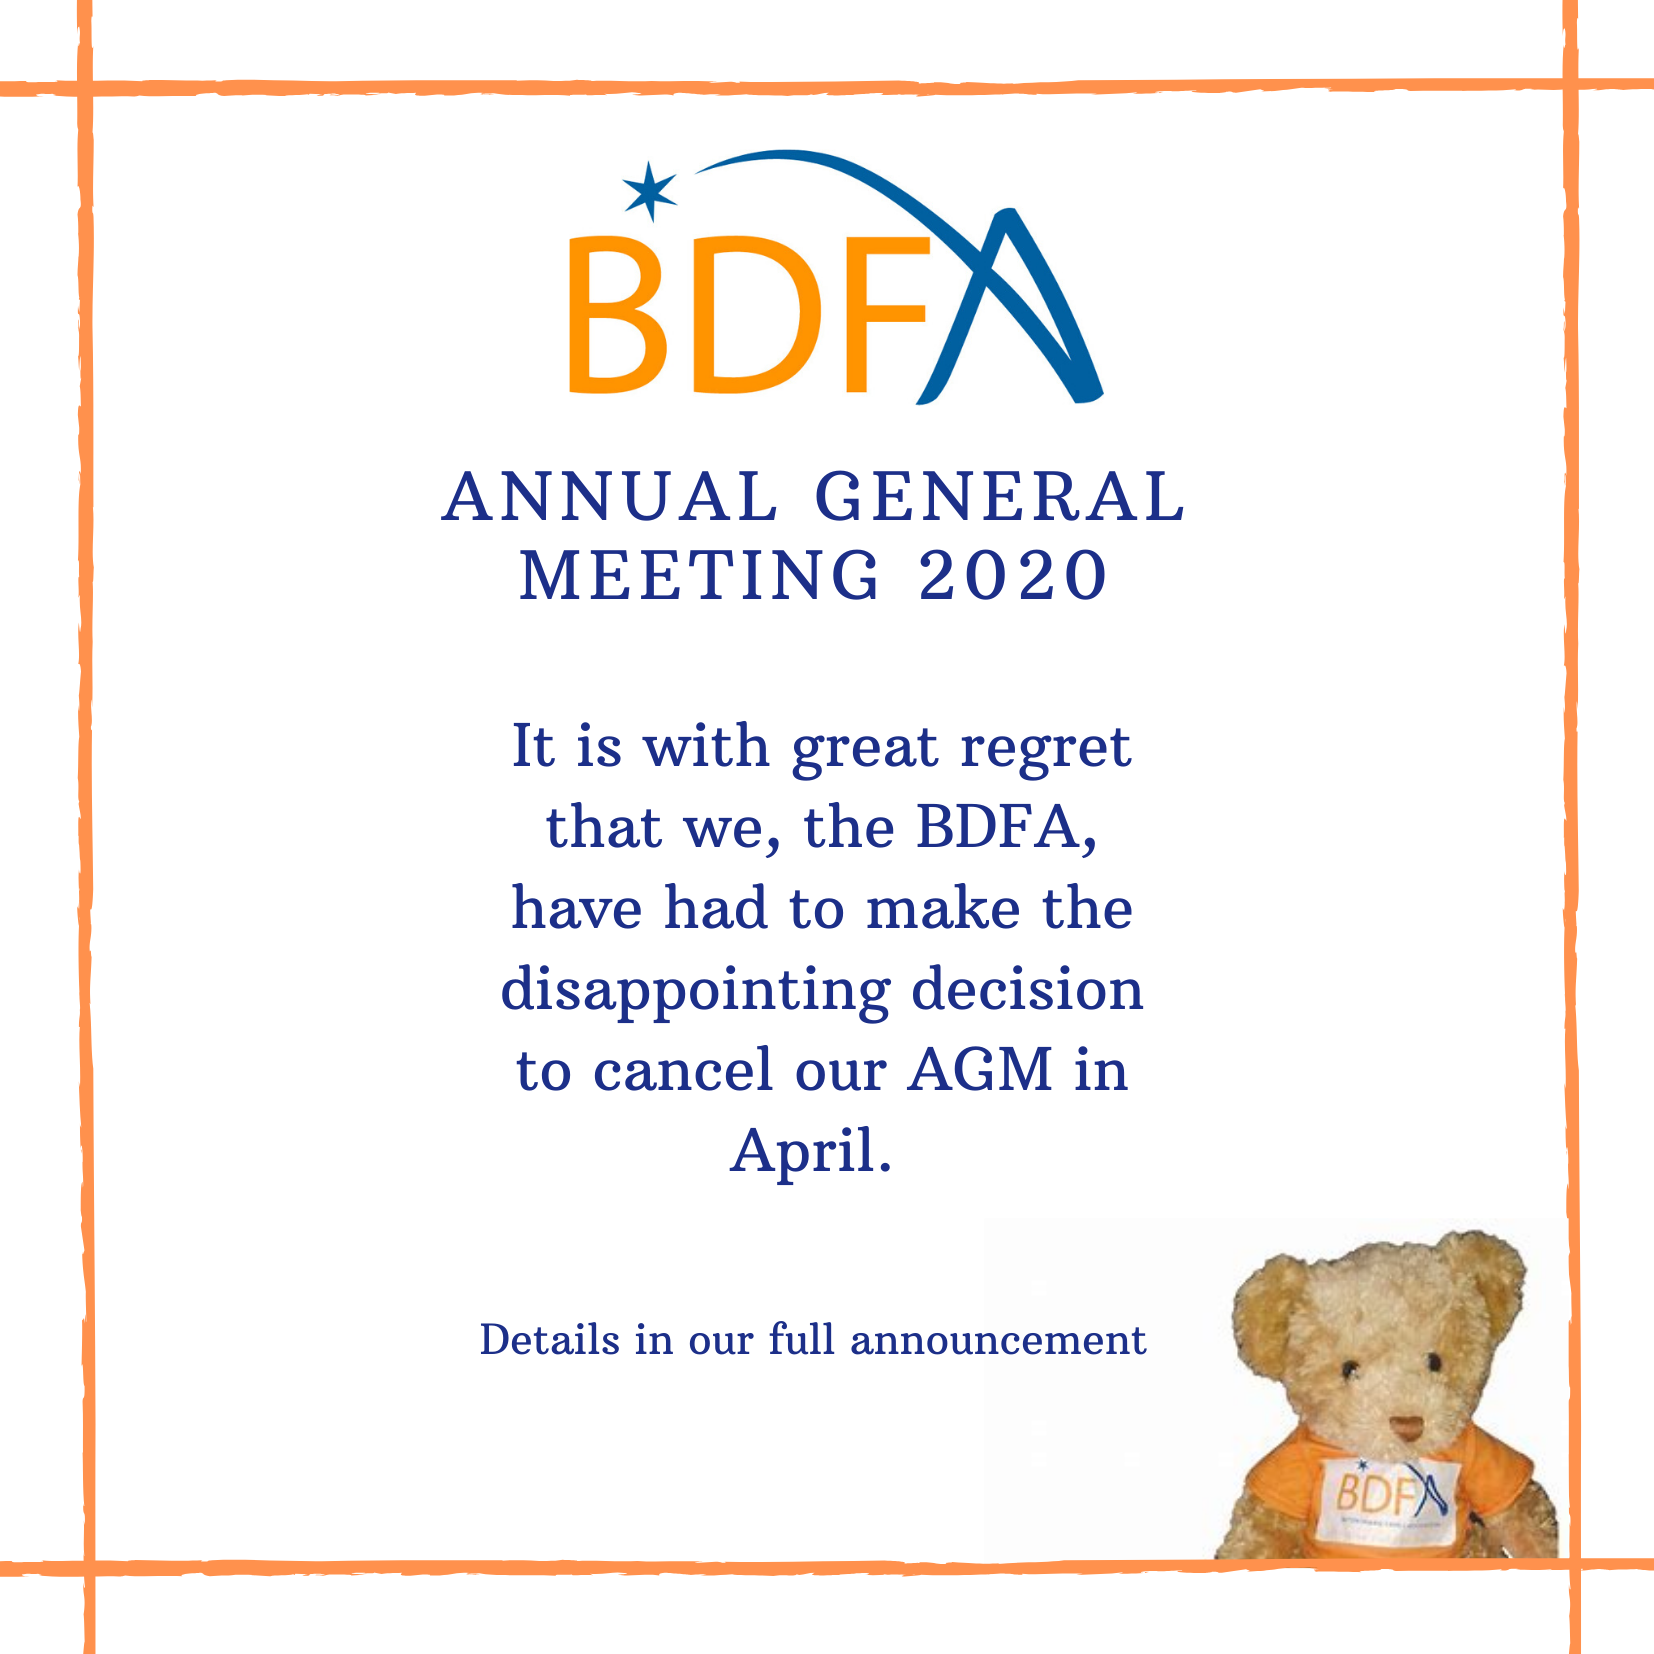 Cancellation Of AGM On 25th April 2020